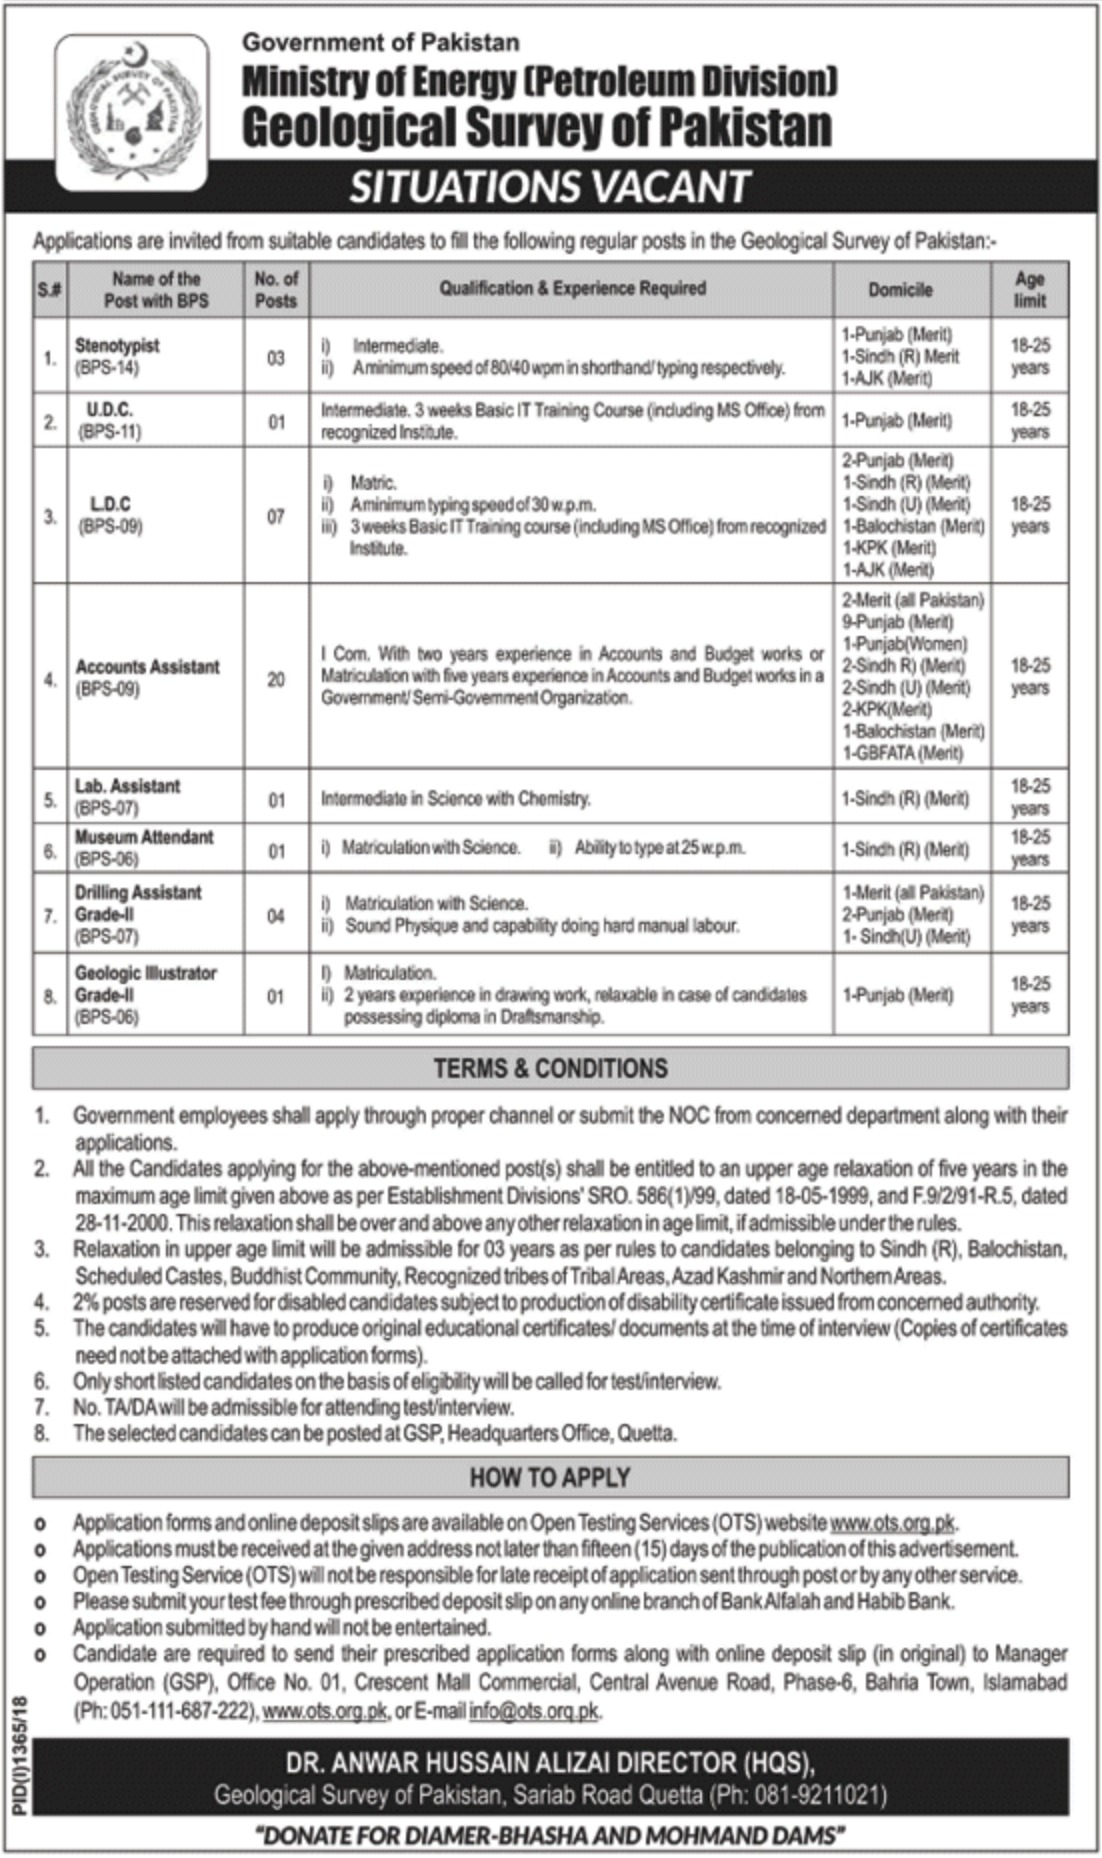 Geological Survey of Pakistan Ministry of Energy Jobs 2018